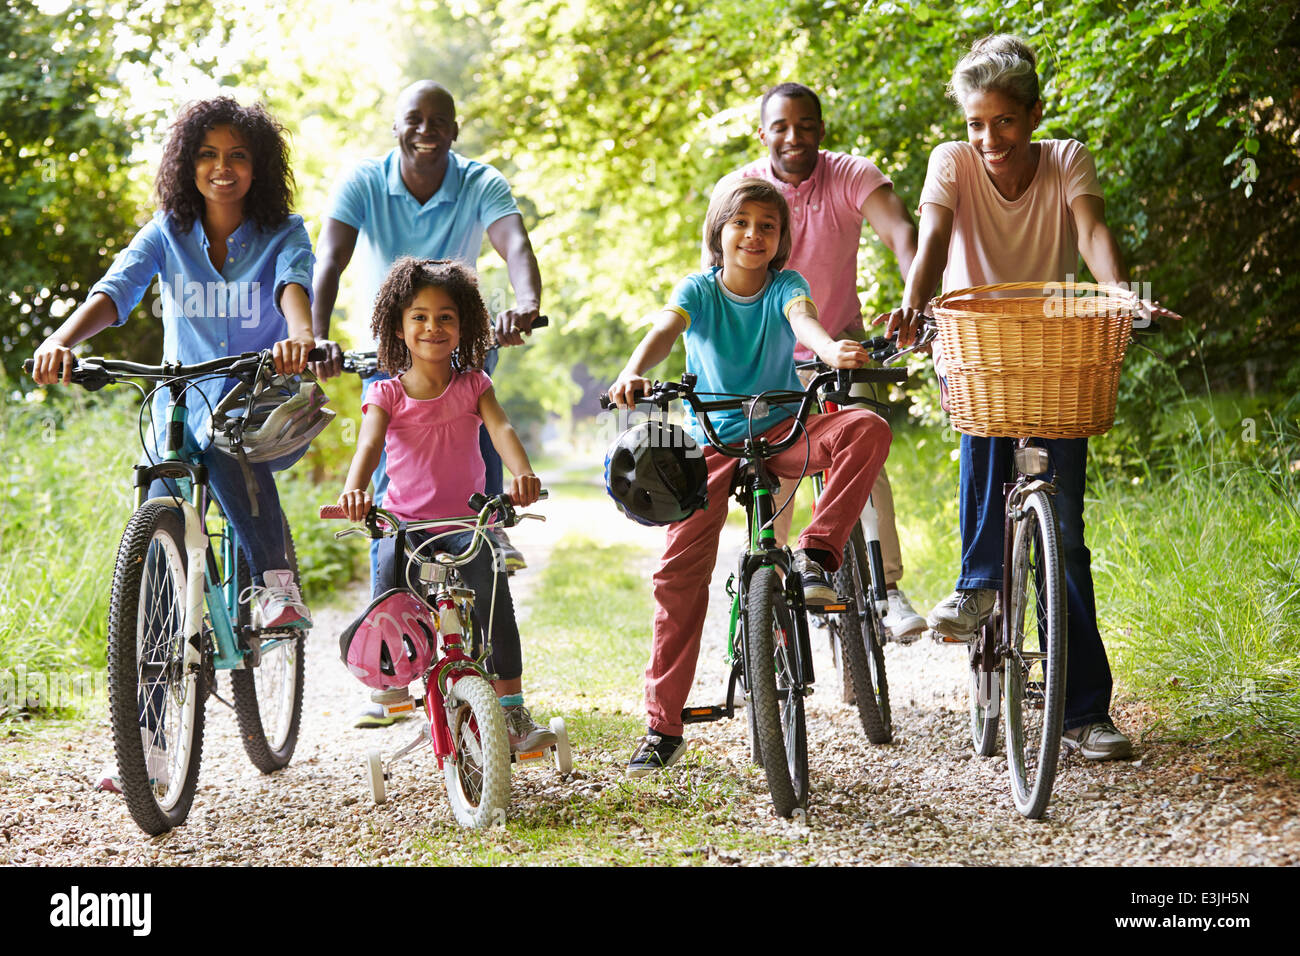 Multi Generation African American Family On Cycle Ride - Stock Image